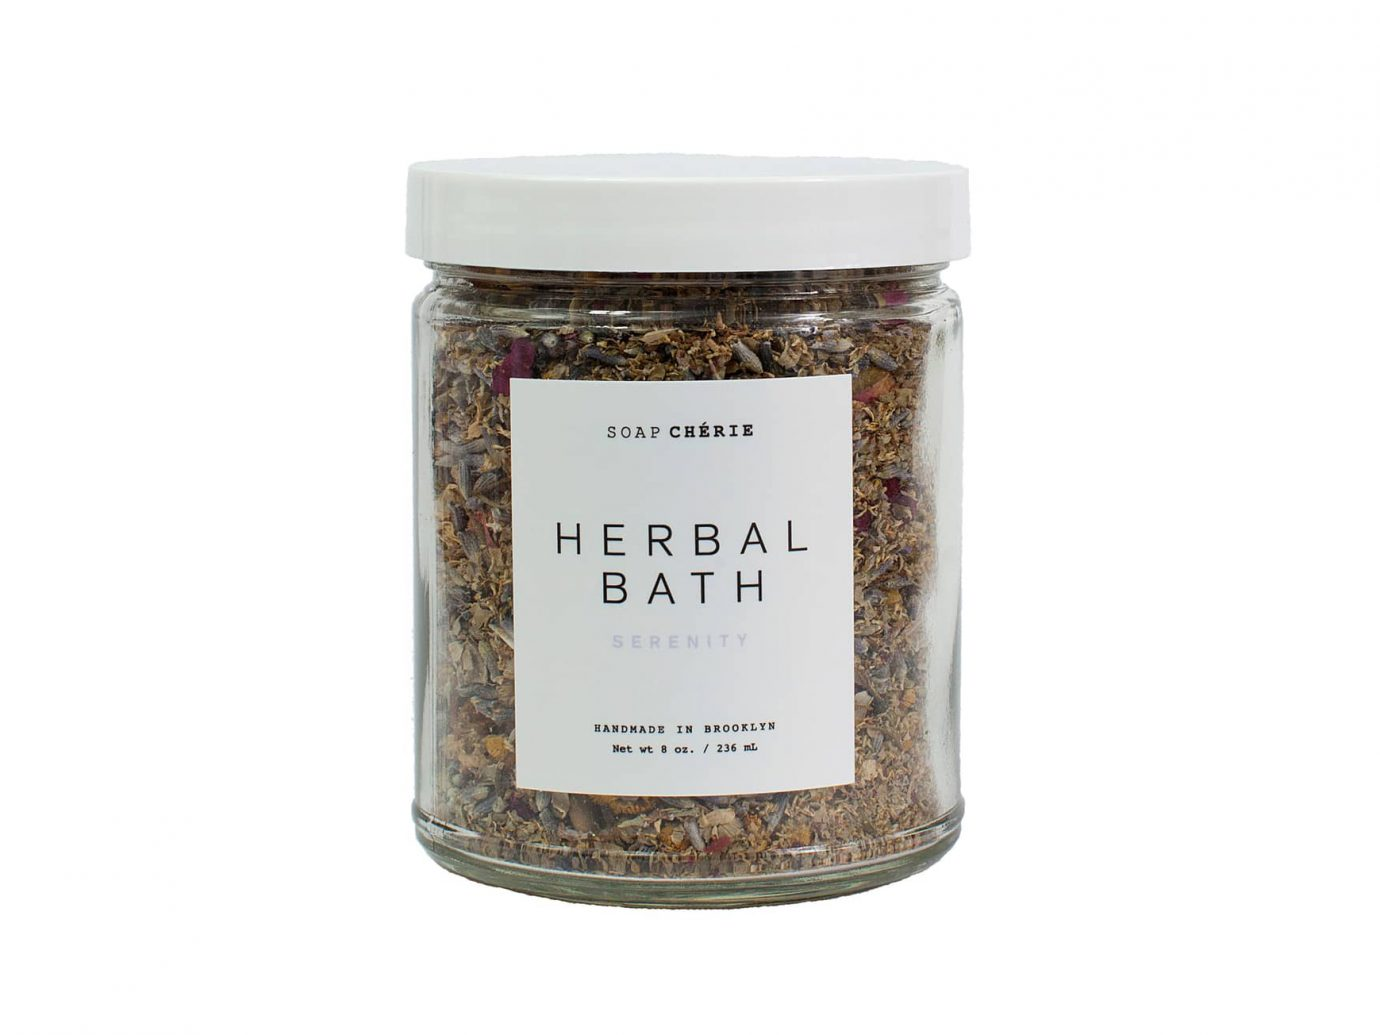 Bath Soak: Soap Chérie Serenity Herbal Bath Remedy